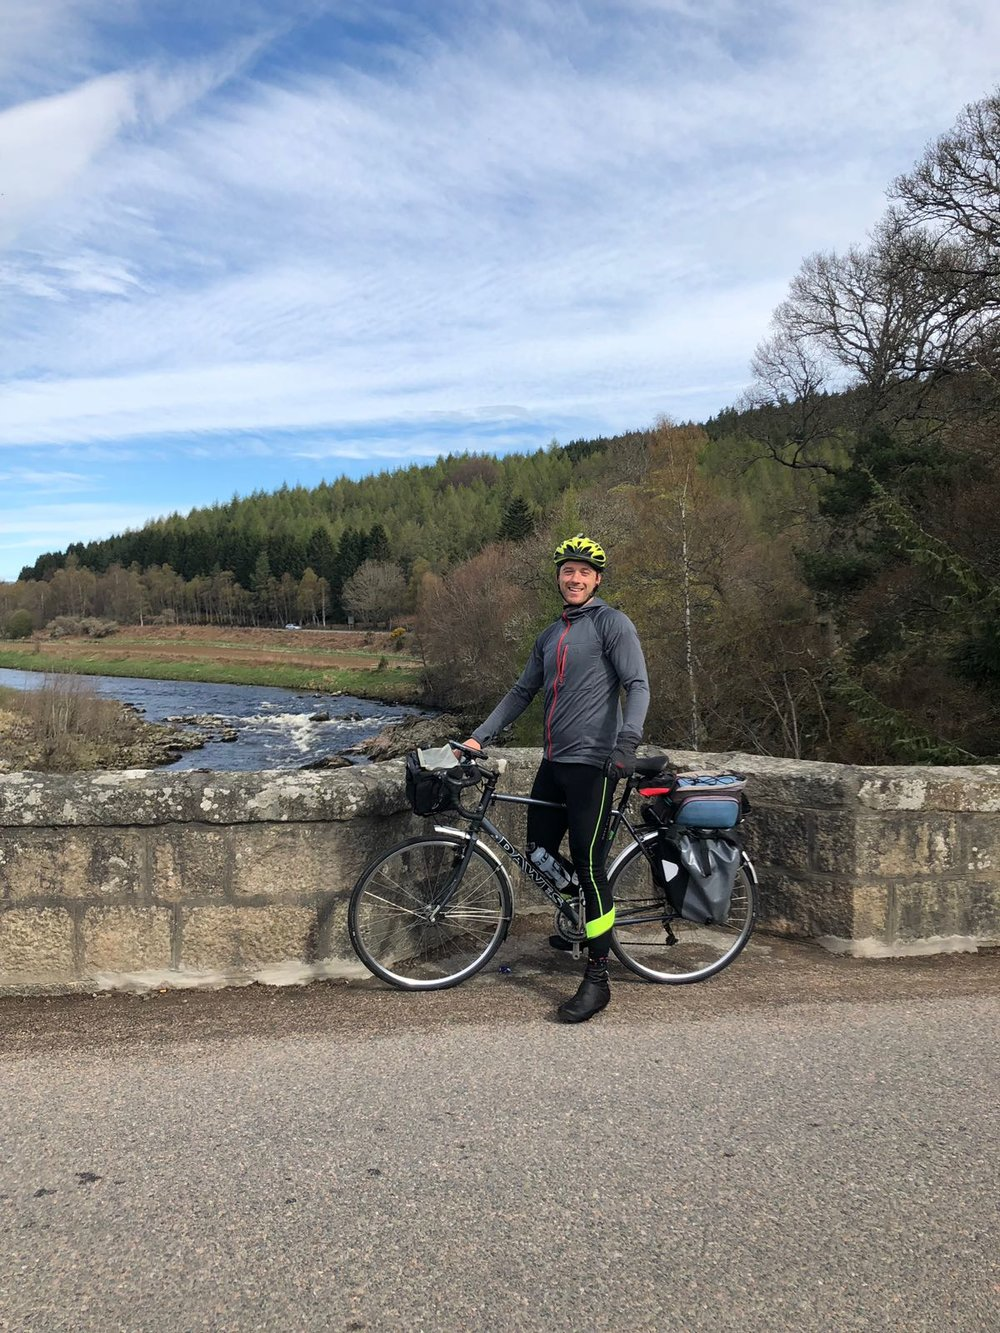 Smiling as Royal Deeside is a great place to train for a cycle challenge!